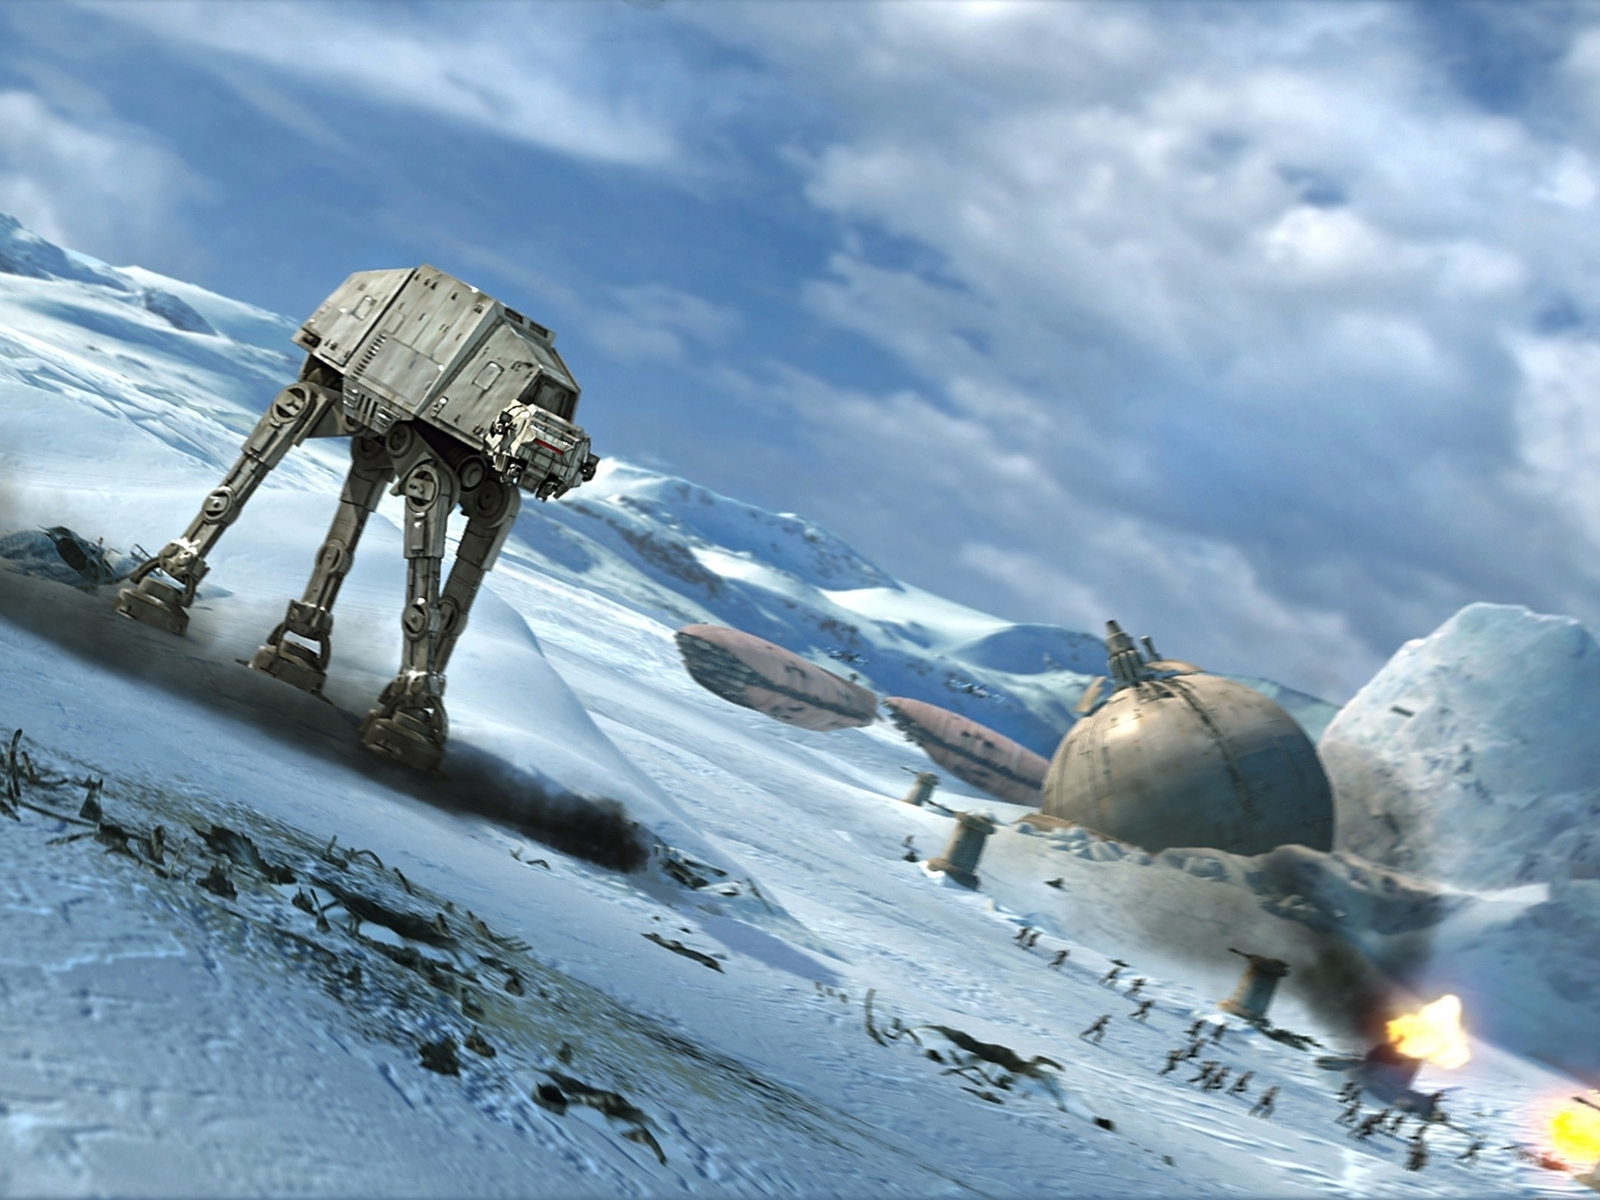 Star wars hoth battles atat (1600x1200)